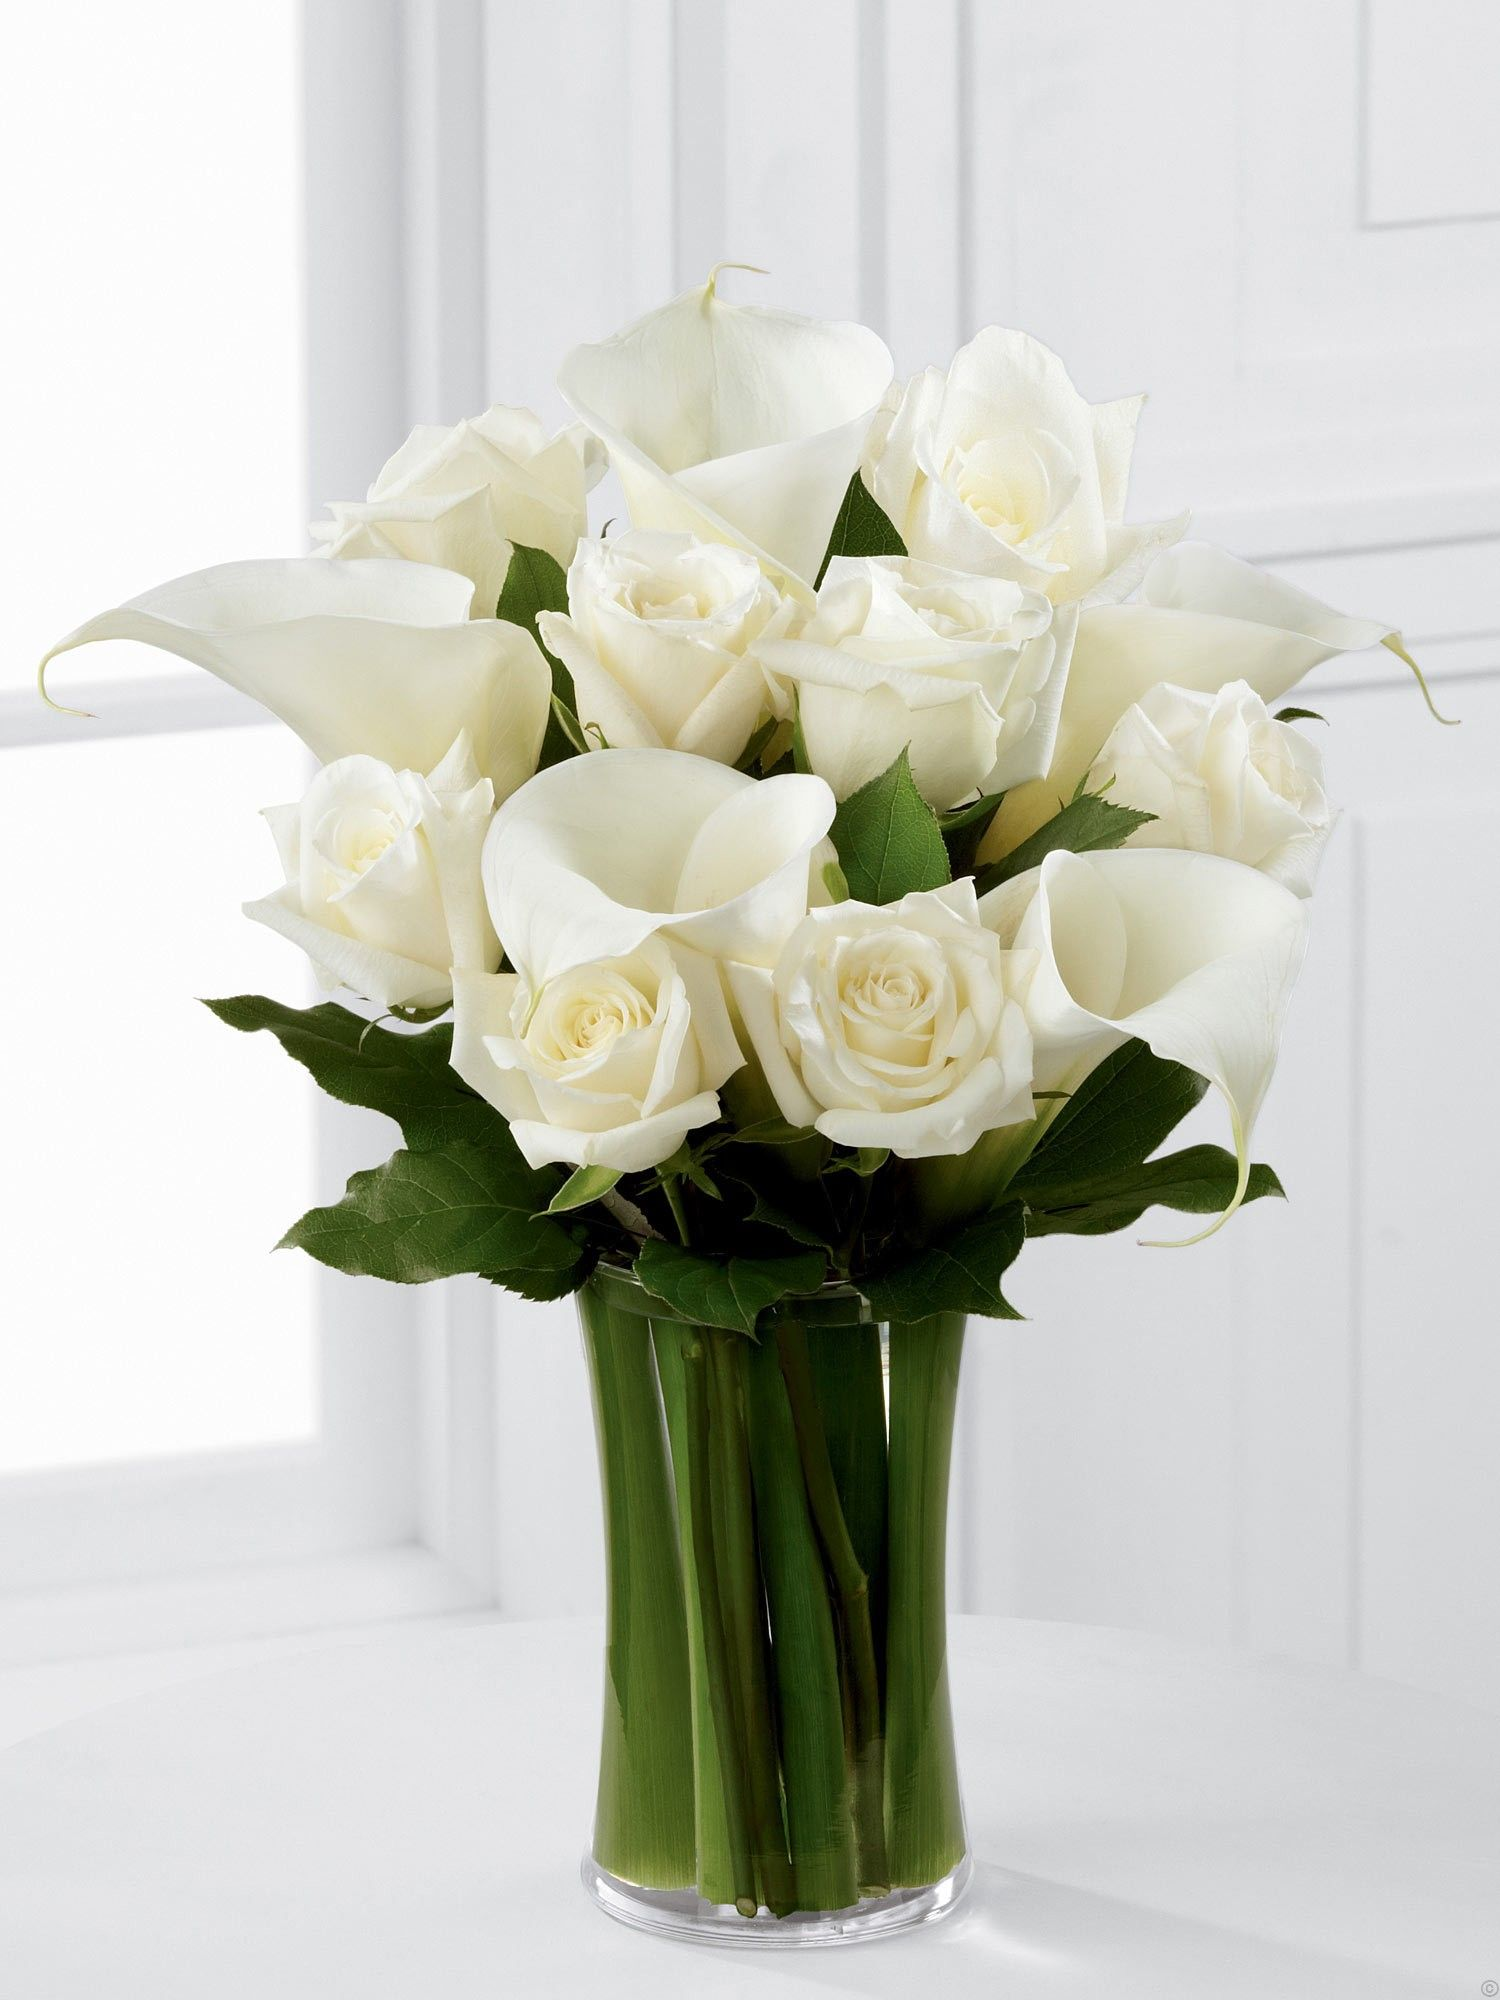 White flowers green leaves pure and clean luxury white rose luxury white rose and calla lily vase beautiful white roses and calla lilies are simply set amongst lush greens in a clear curved glass vase to create a reviewsmspy